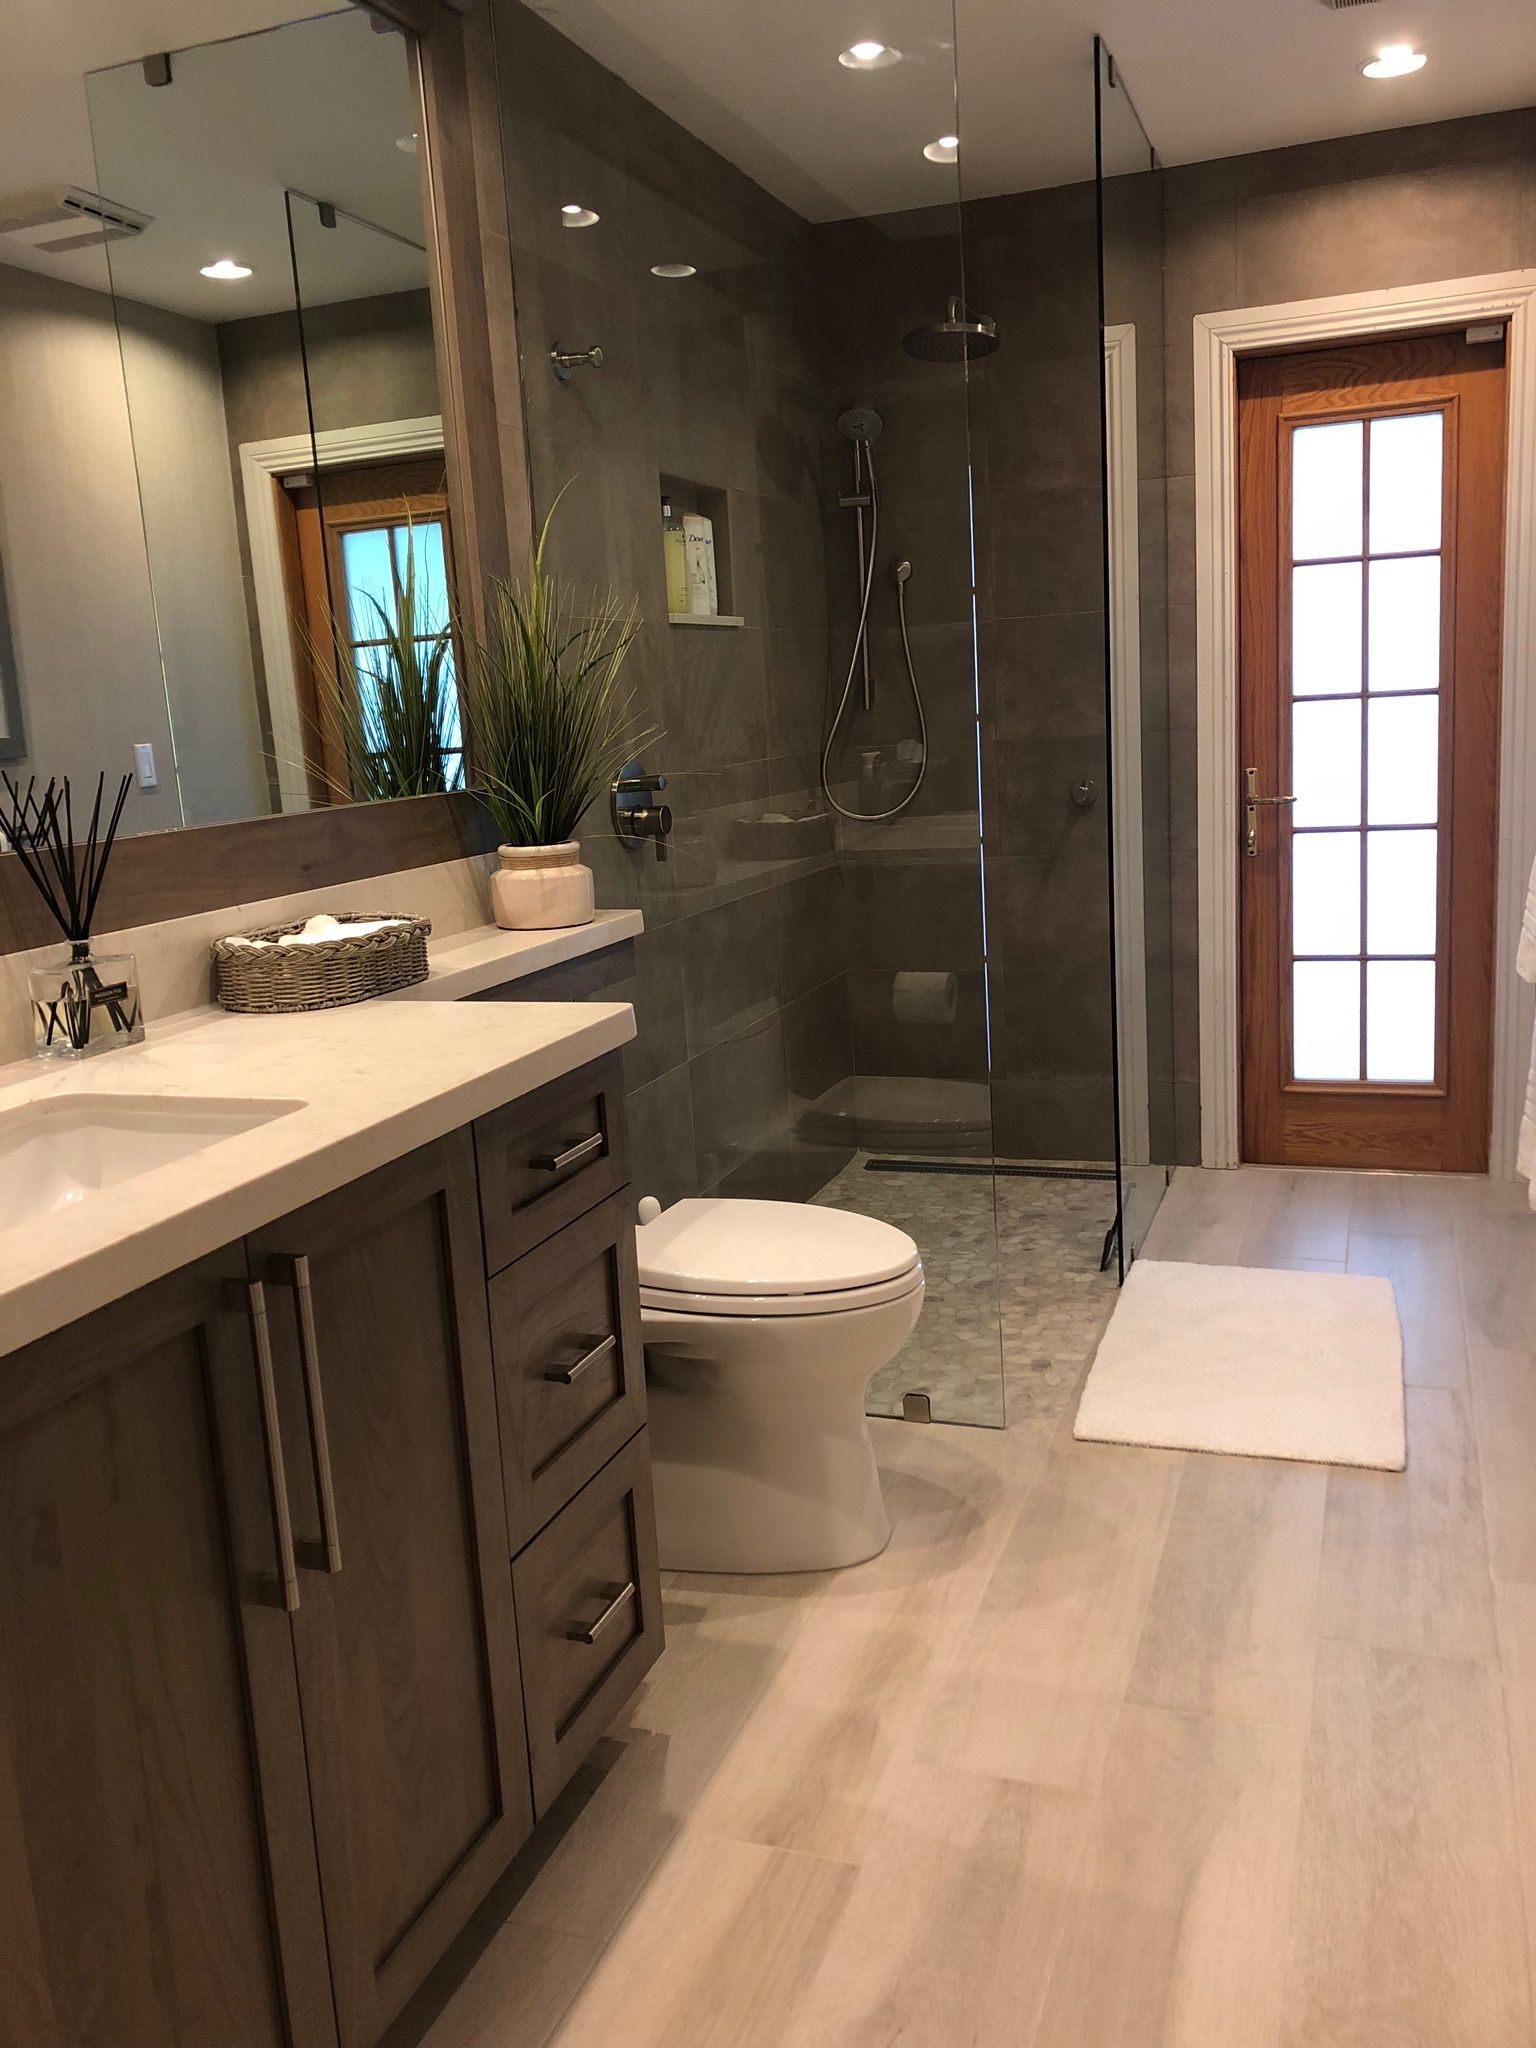 New cabana bath with walk in shower without doors. Wood